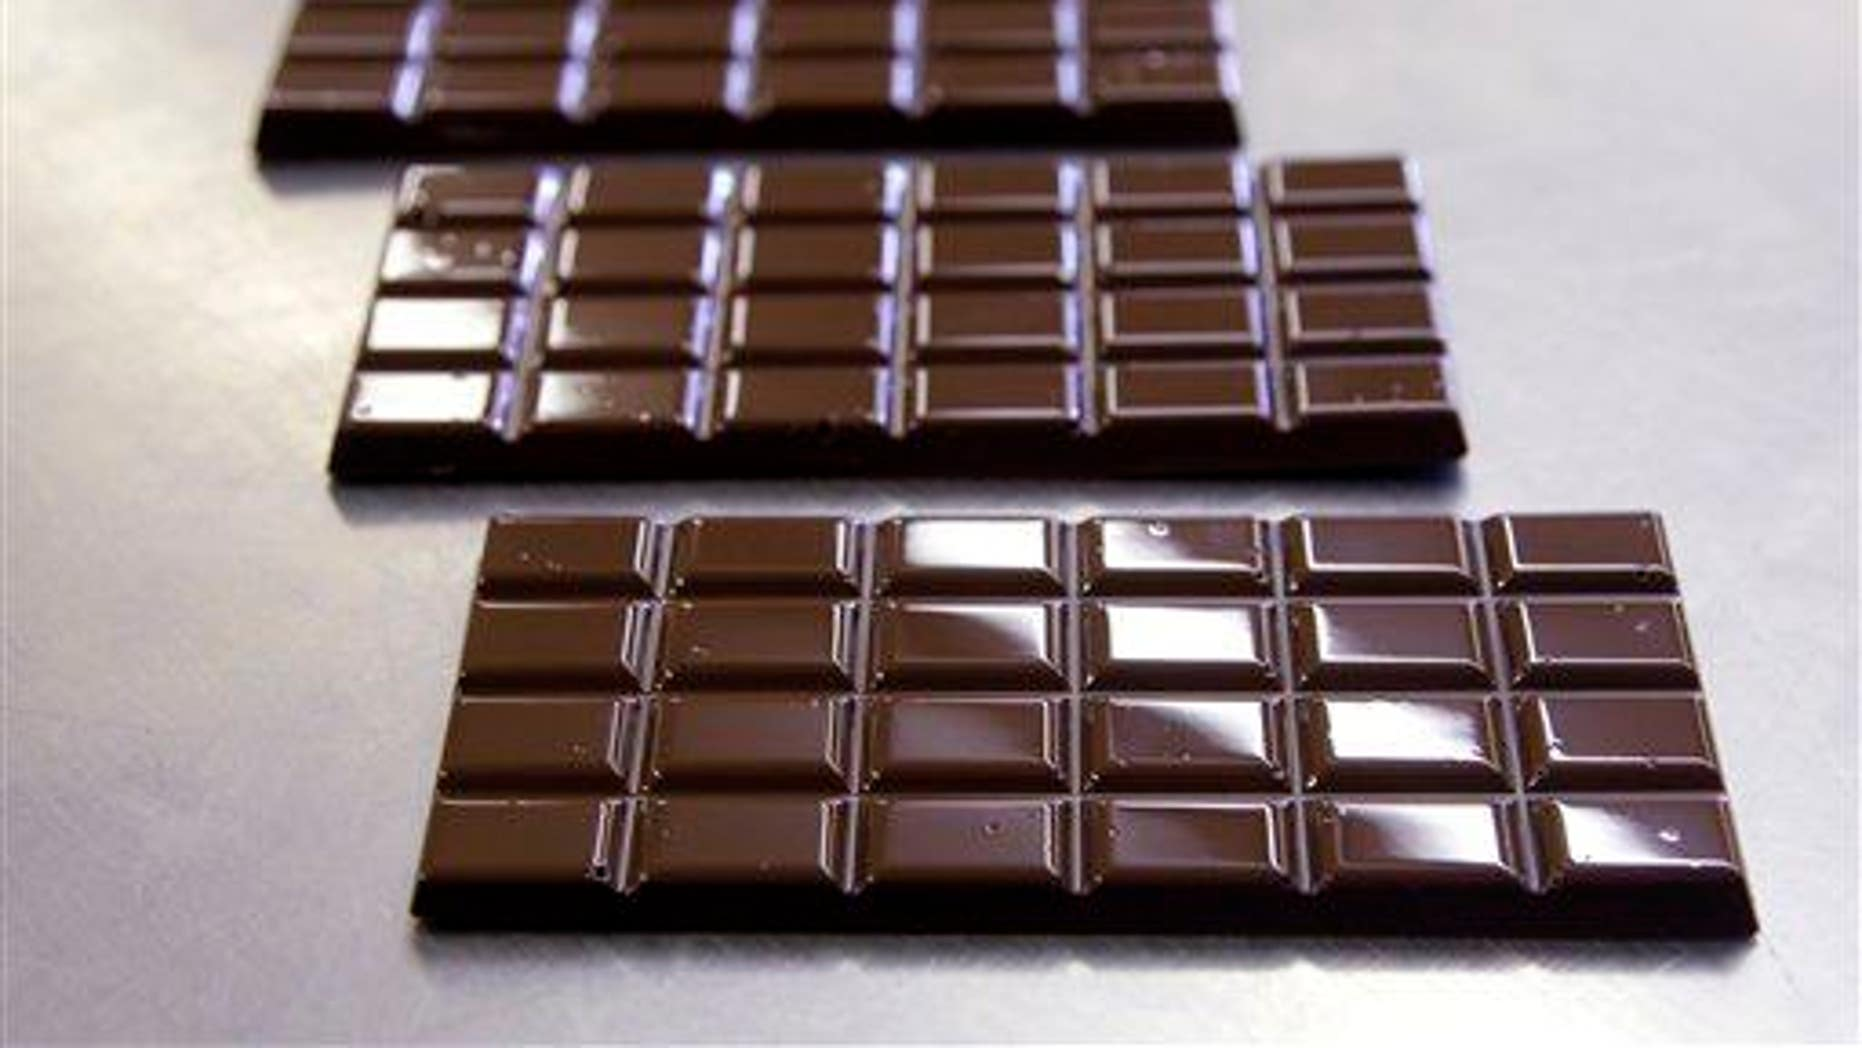 Dark chocolate bars are ready to be wrapped.